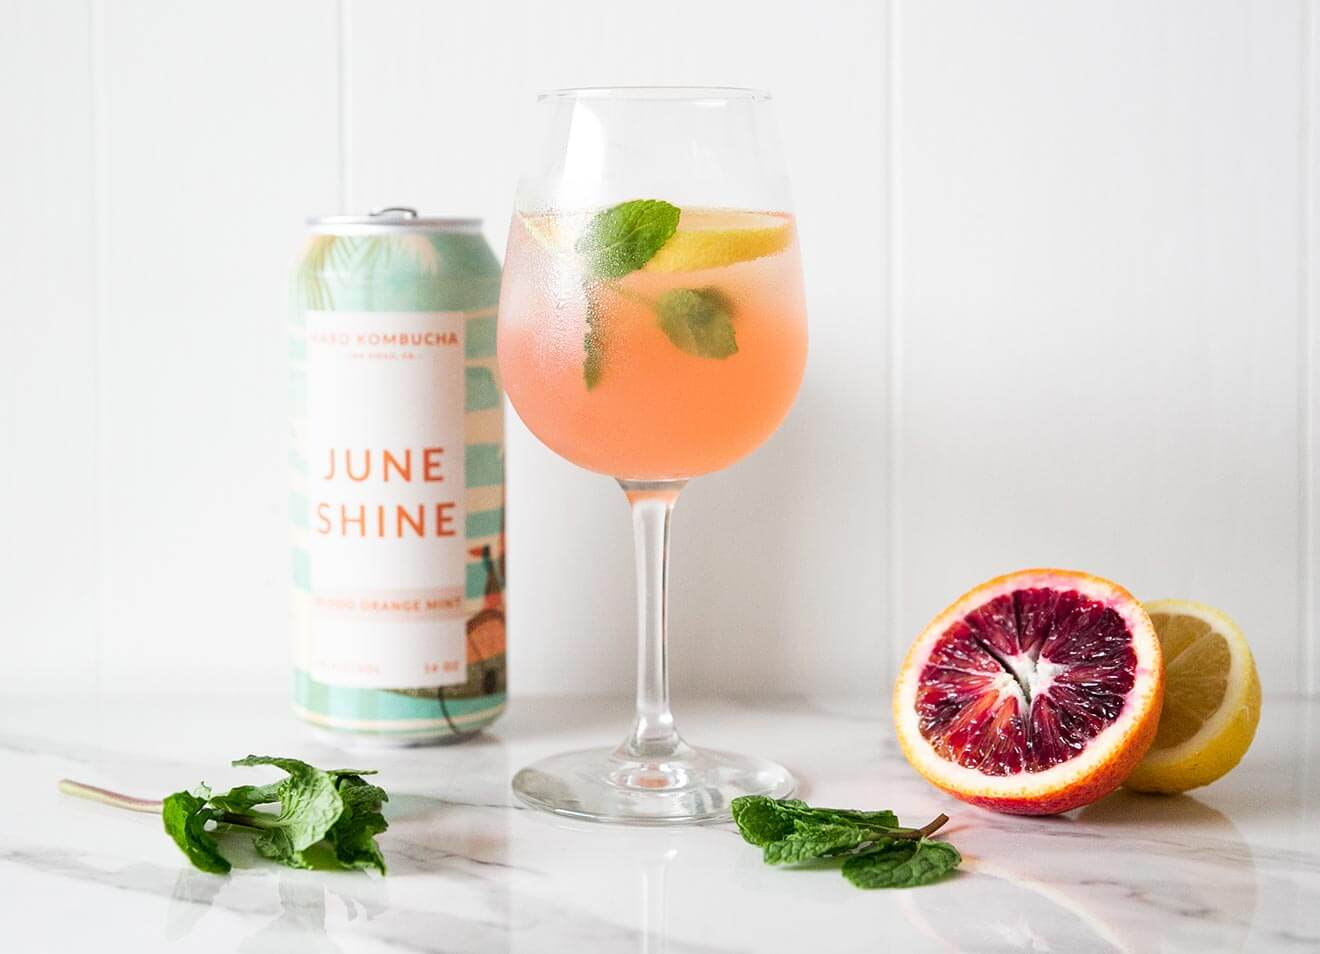 JuneShine Spritz, bottle, cocktail and fruit garnish